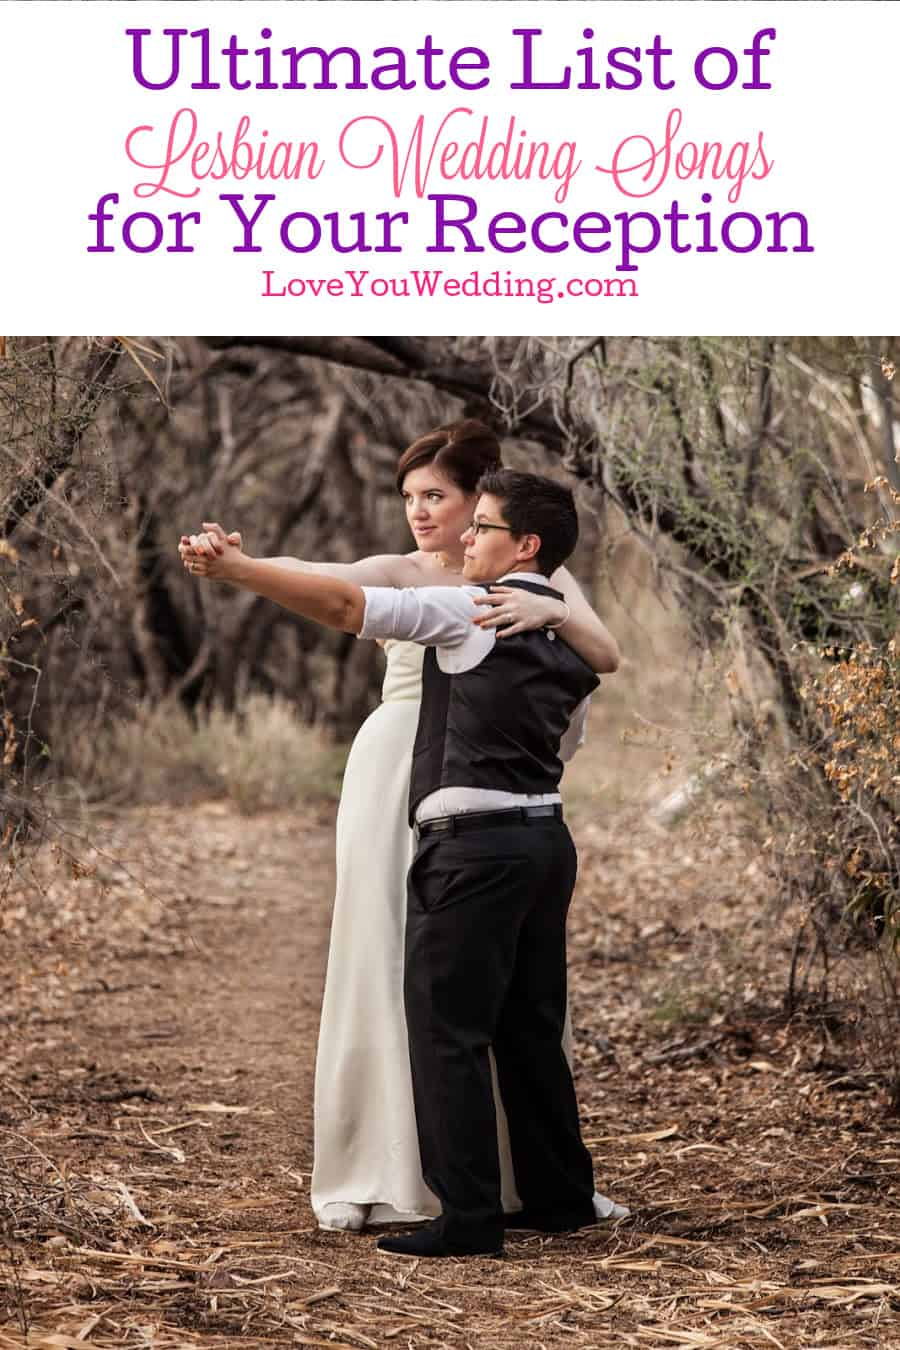 This list of lesbian wedding songs will have you covered from your walk down the aisle to the very last dance of your reception!